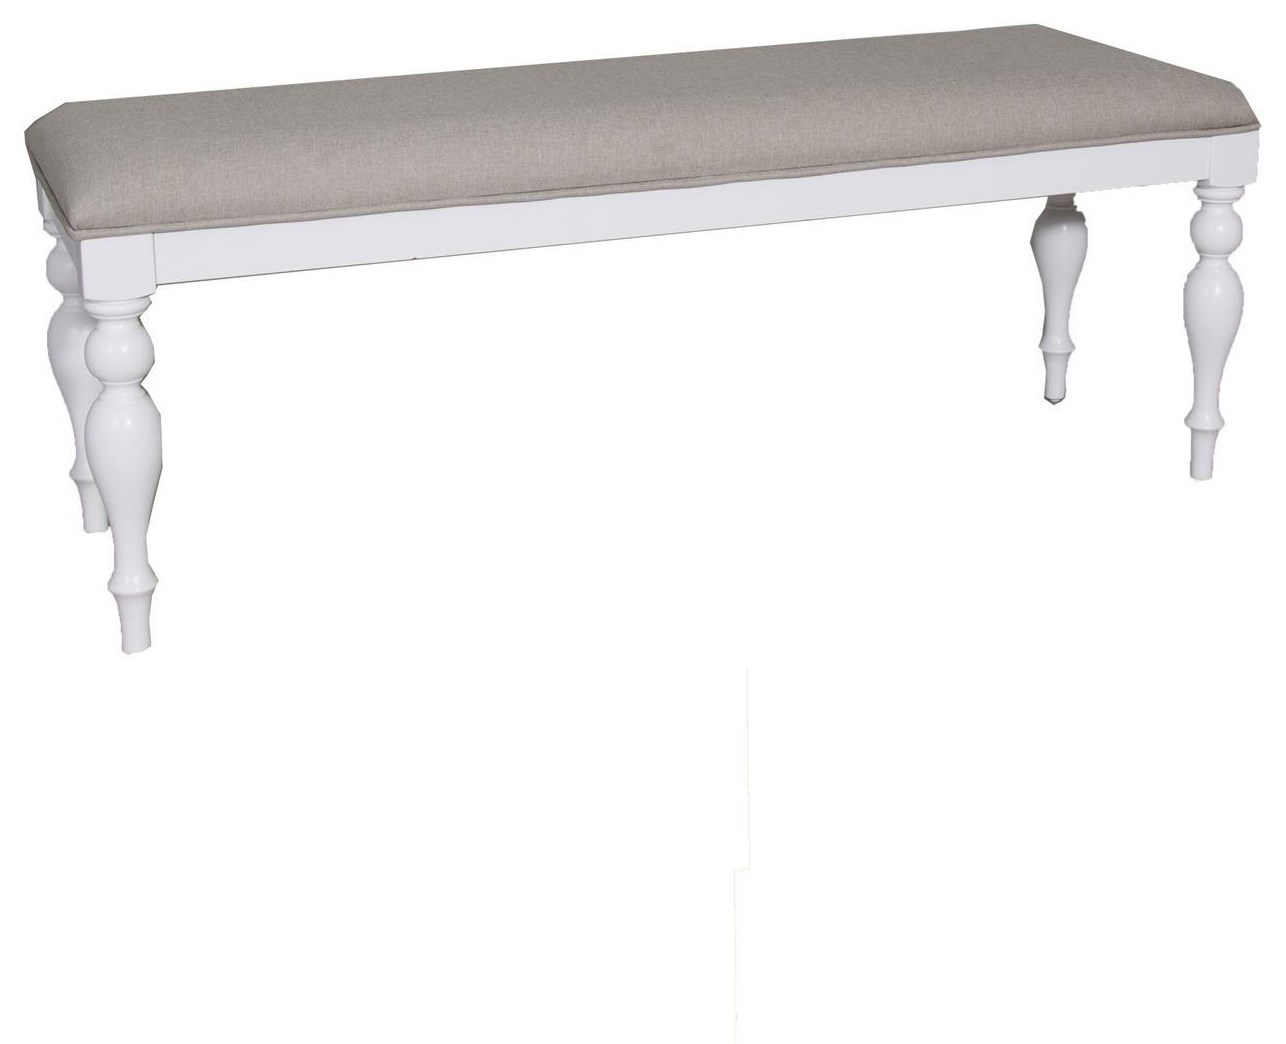 Transitional Dining Bench with Turned Legs